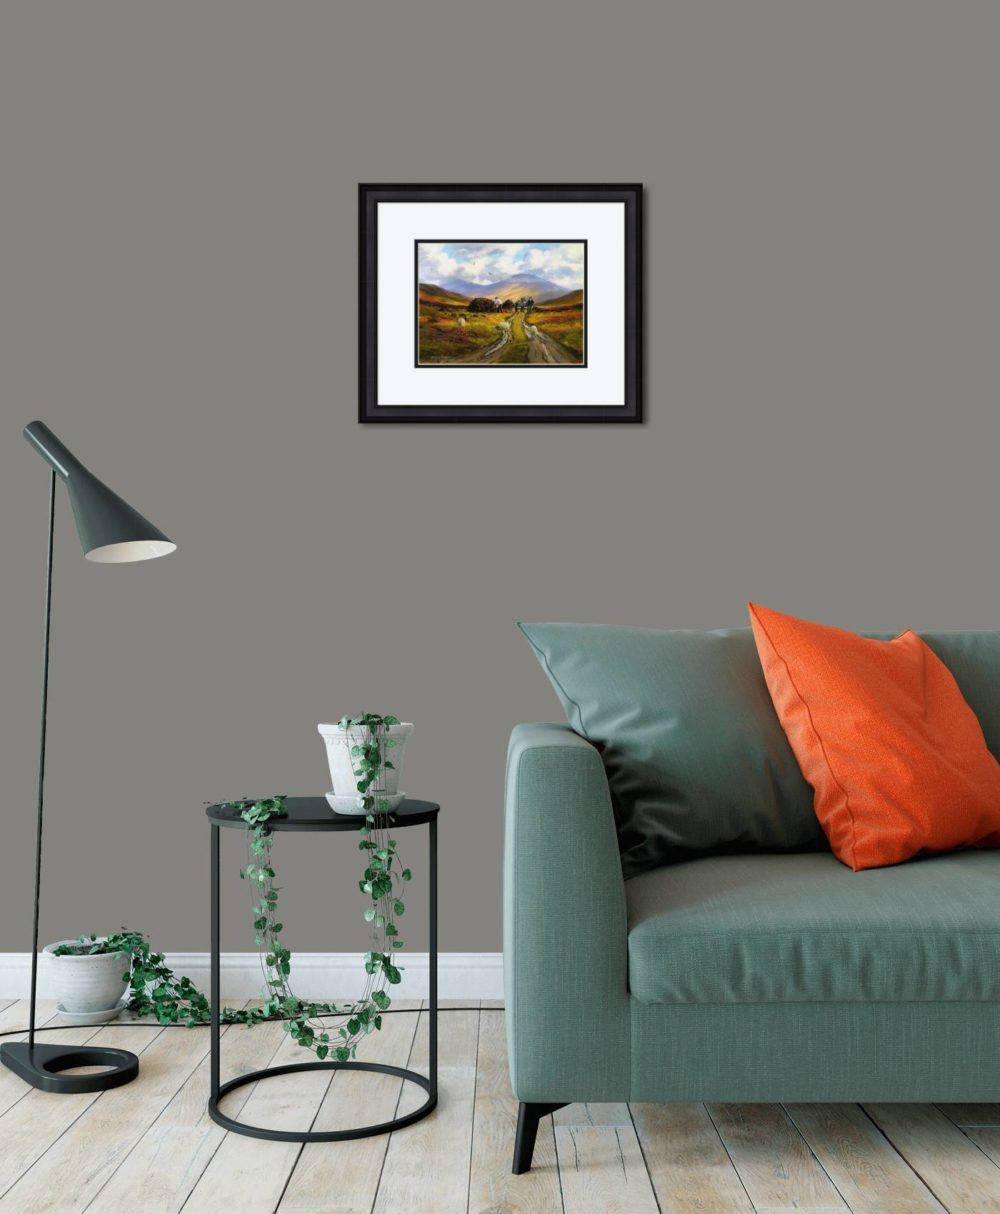 Collecting The Turf Print (Small) in Black Frame in Room